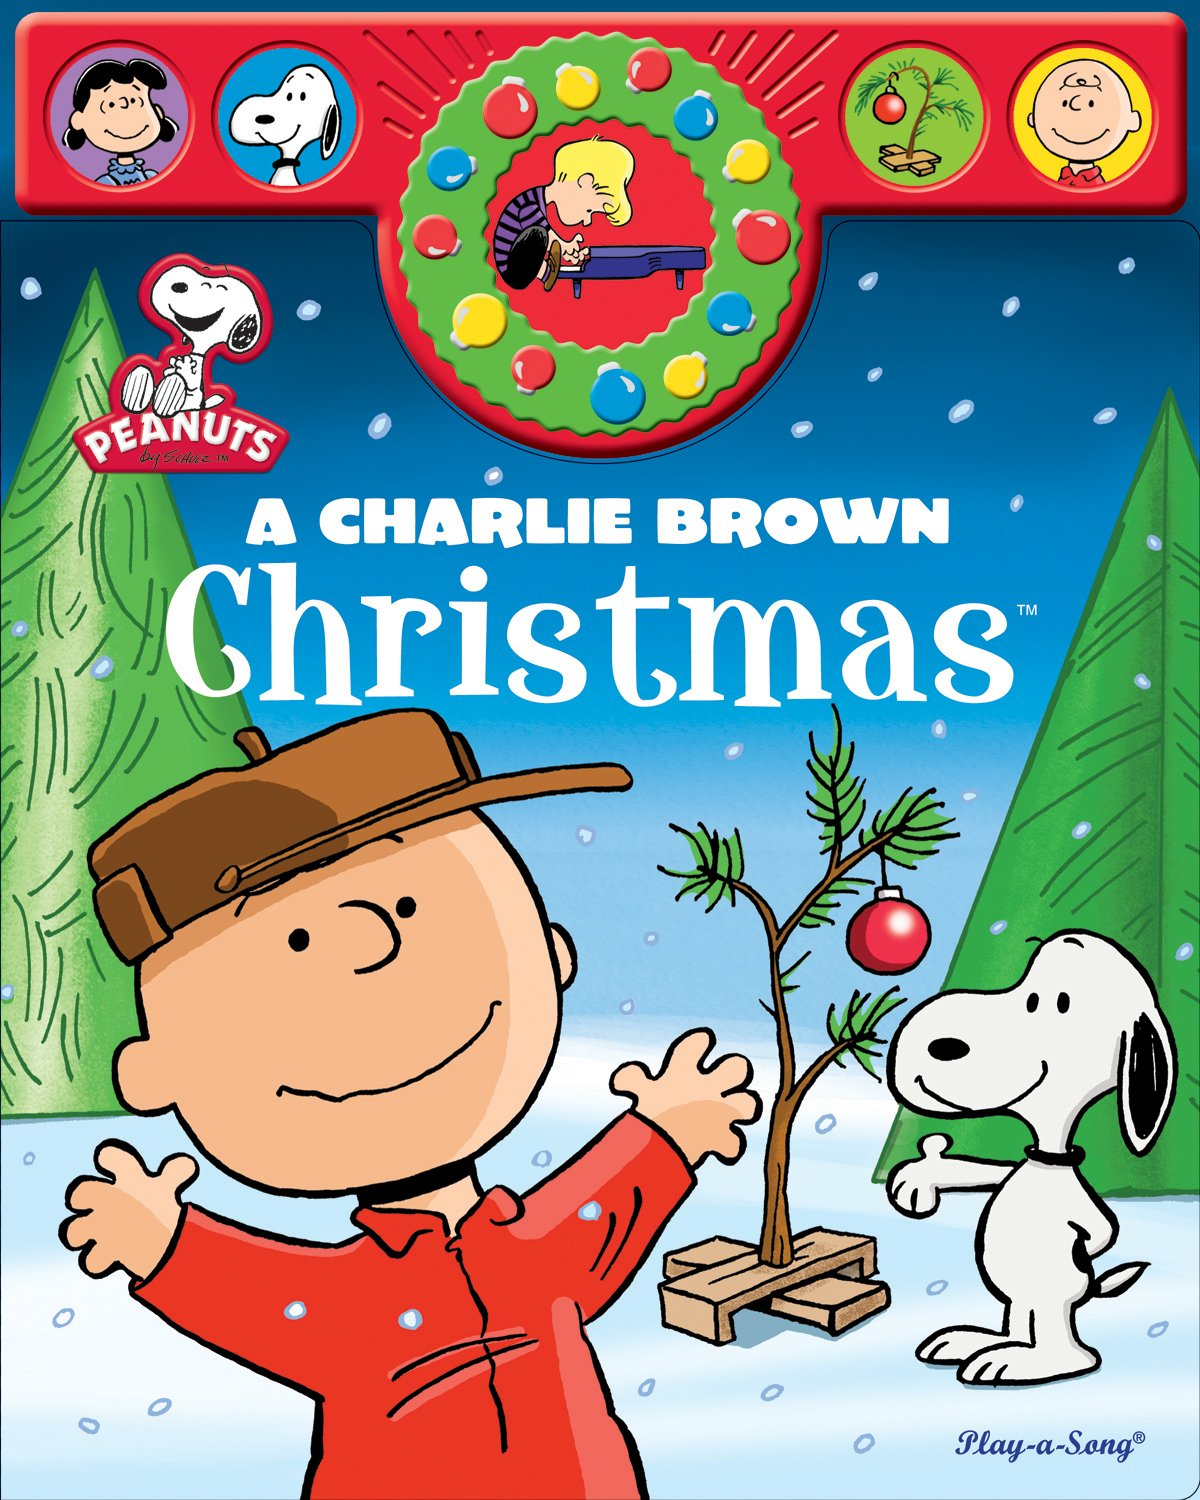 a charlie brown christmas play a song book peanuts play a sound editors of publications international 9781450821728 amazoncom books